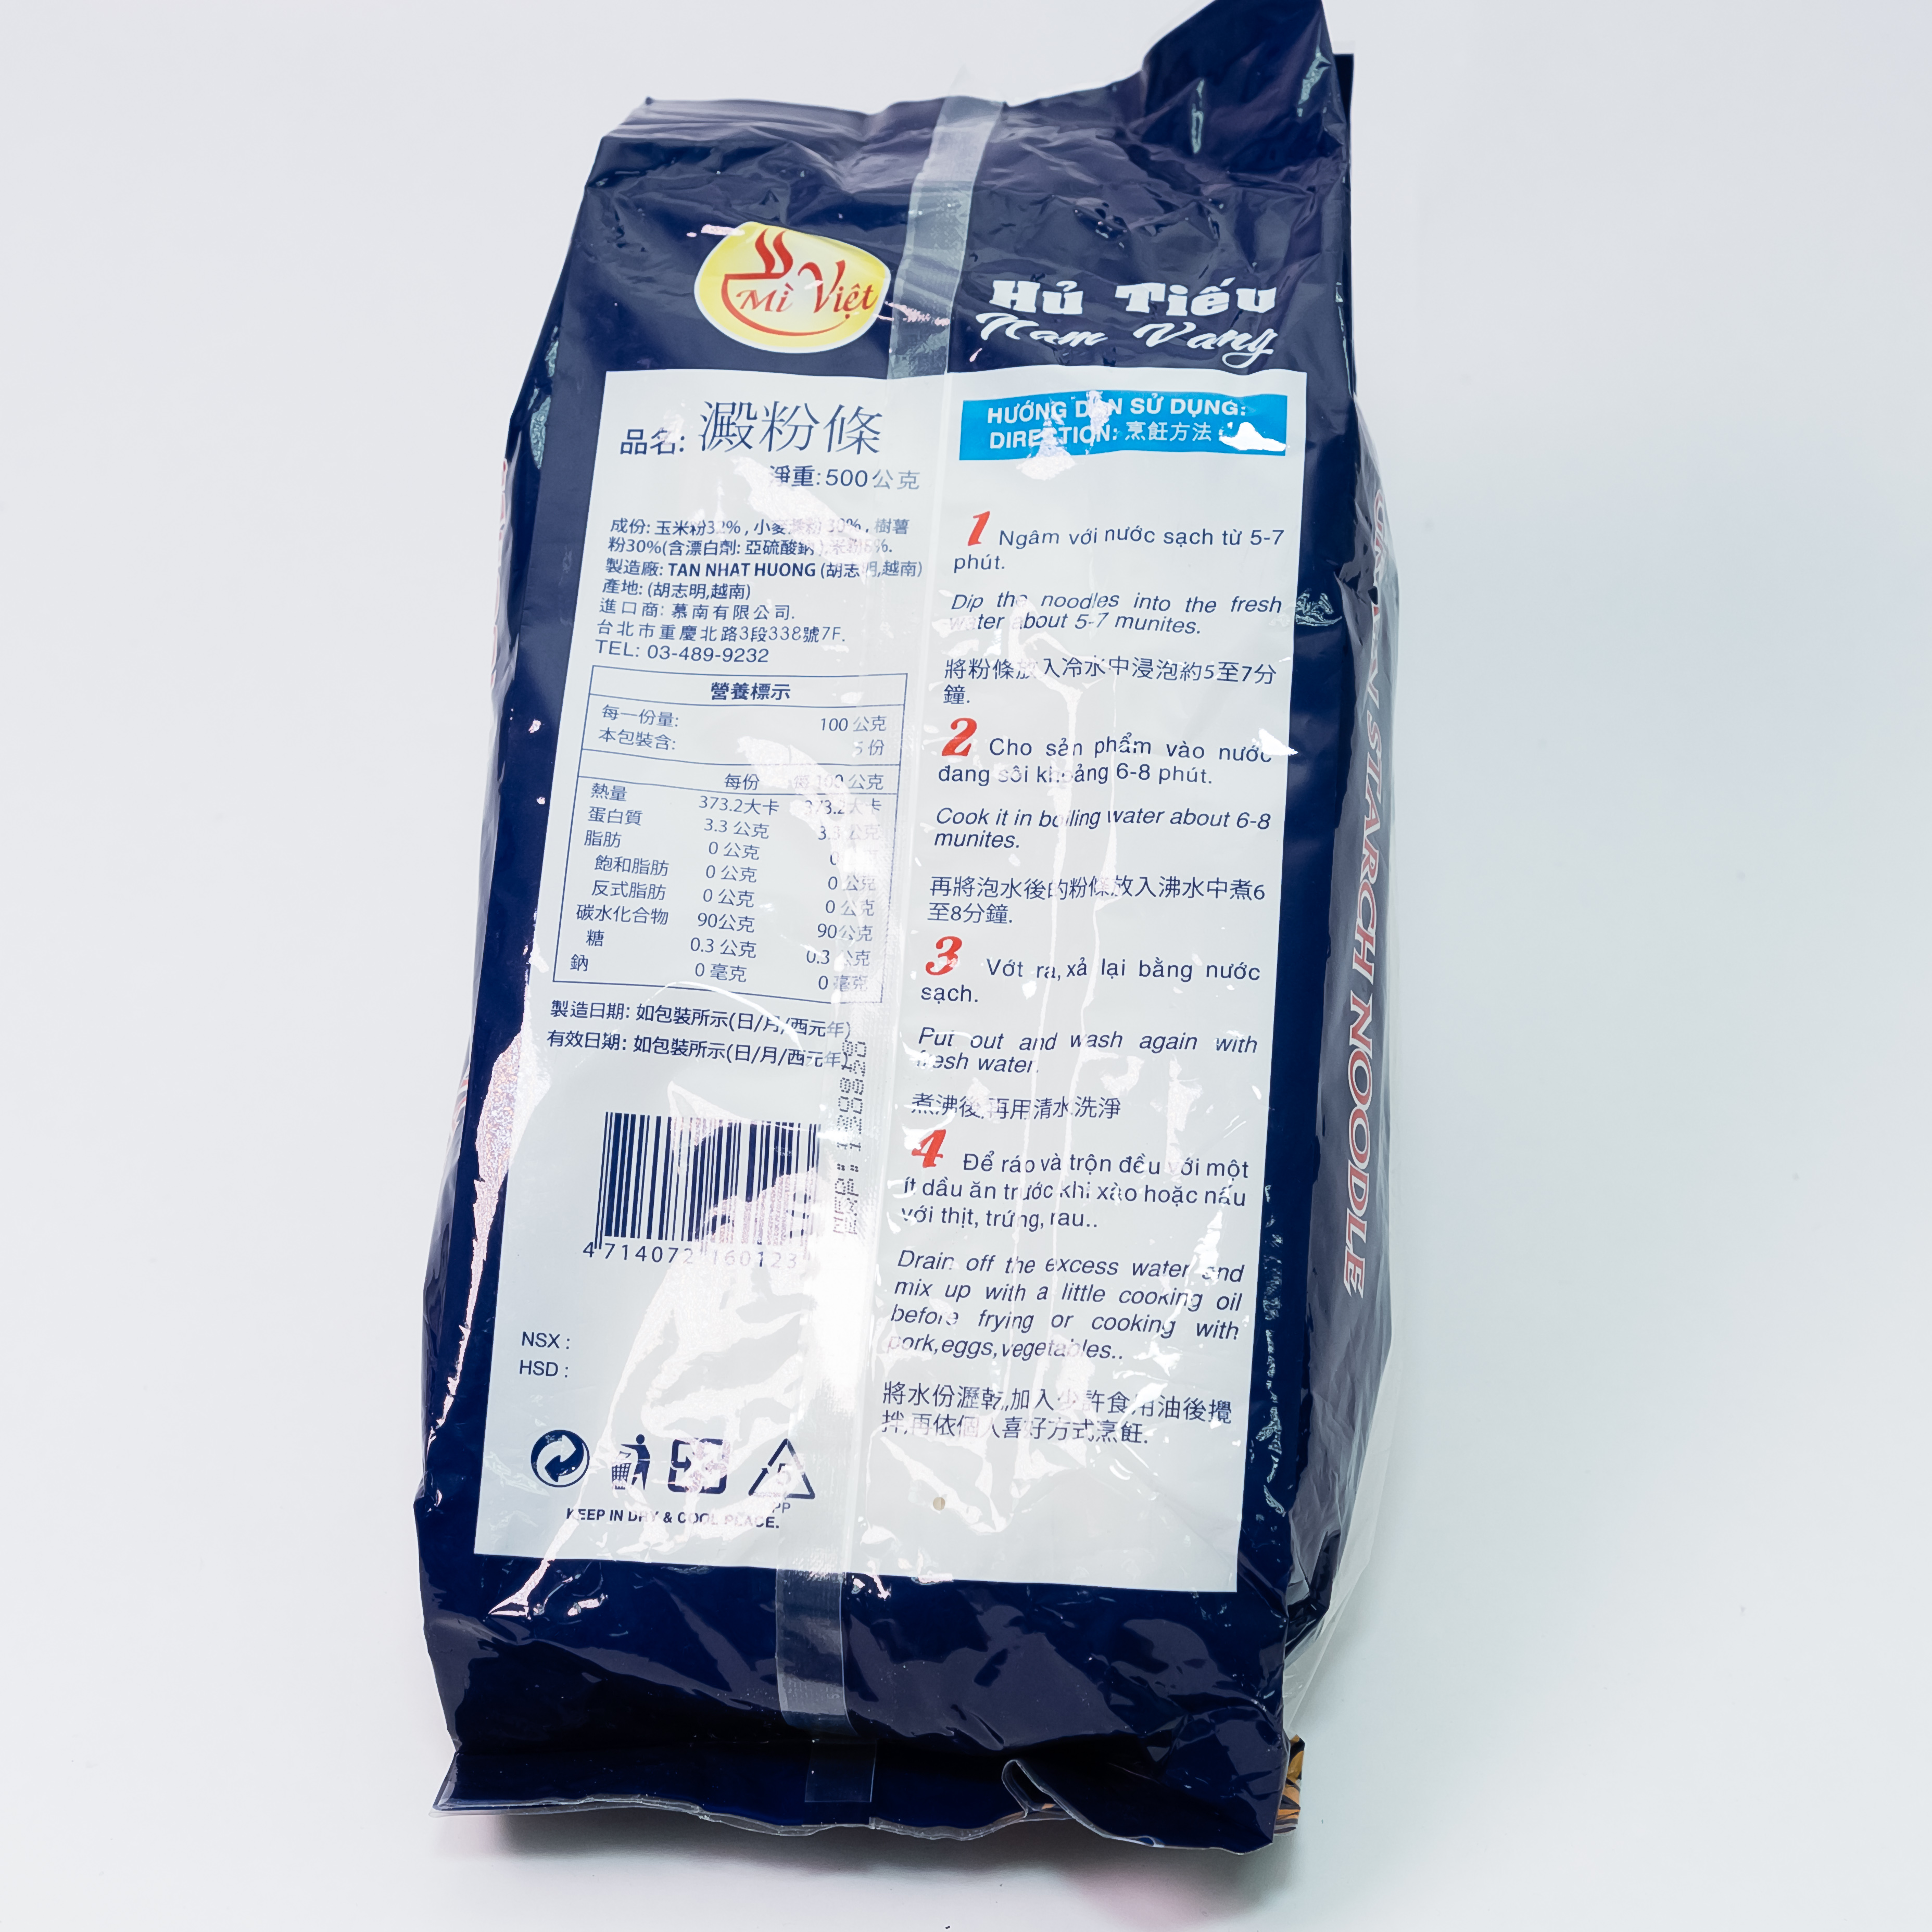 500g bags packing instant Rice Noodle - Hu Tieu Nam Vang the product high quality best price from Vietnam